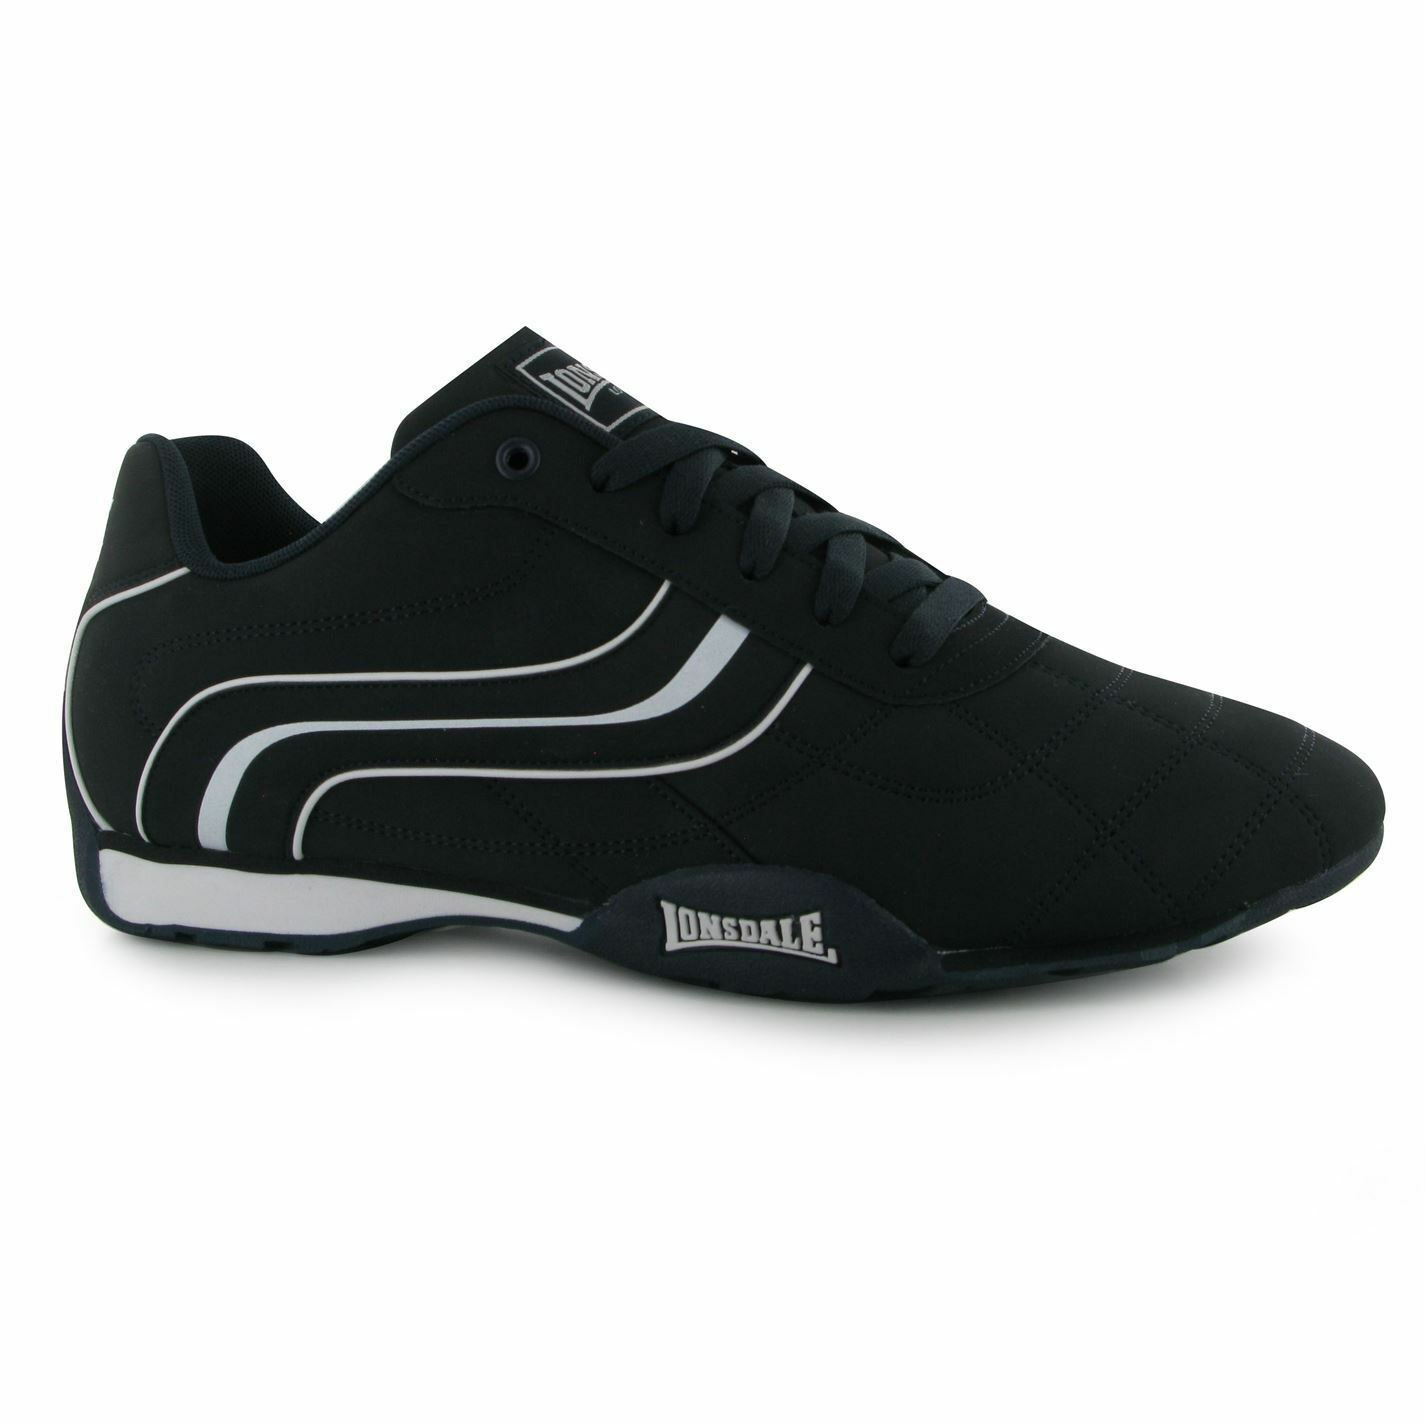 Lonsdale Camden Trainers Mens Navy White Casual Sneakers shoes shoes shoes Footwear 55509e